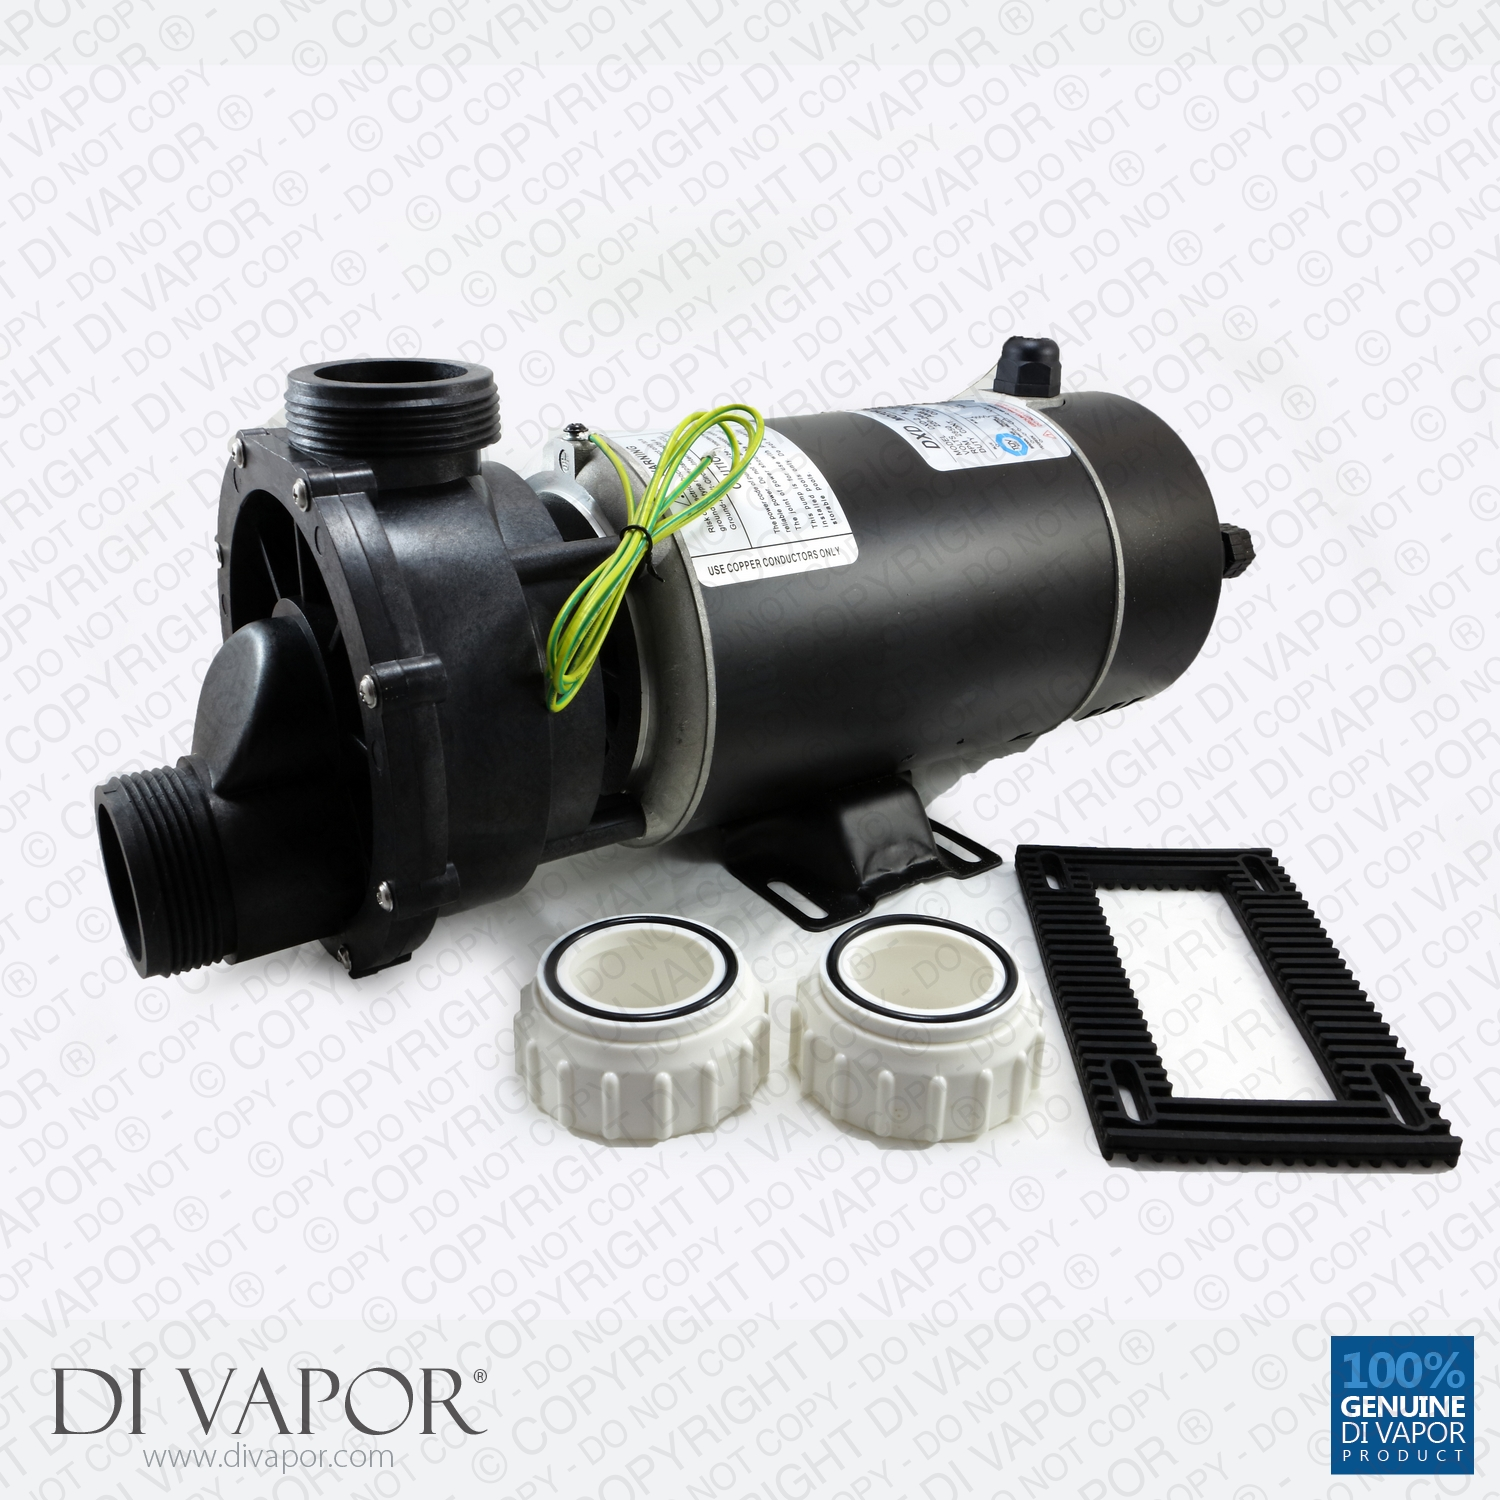 Dxd 2a 1 5hp water pump for hot tub spa for Jacuzzi tub pump motor